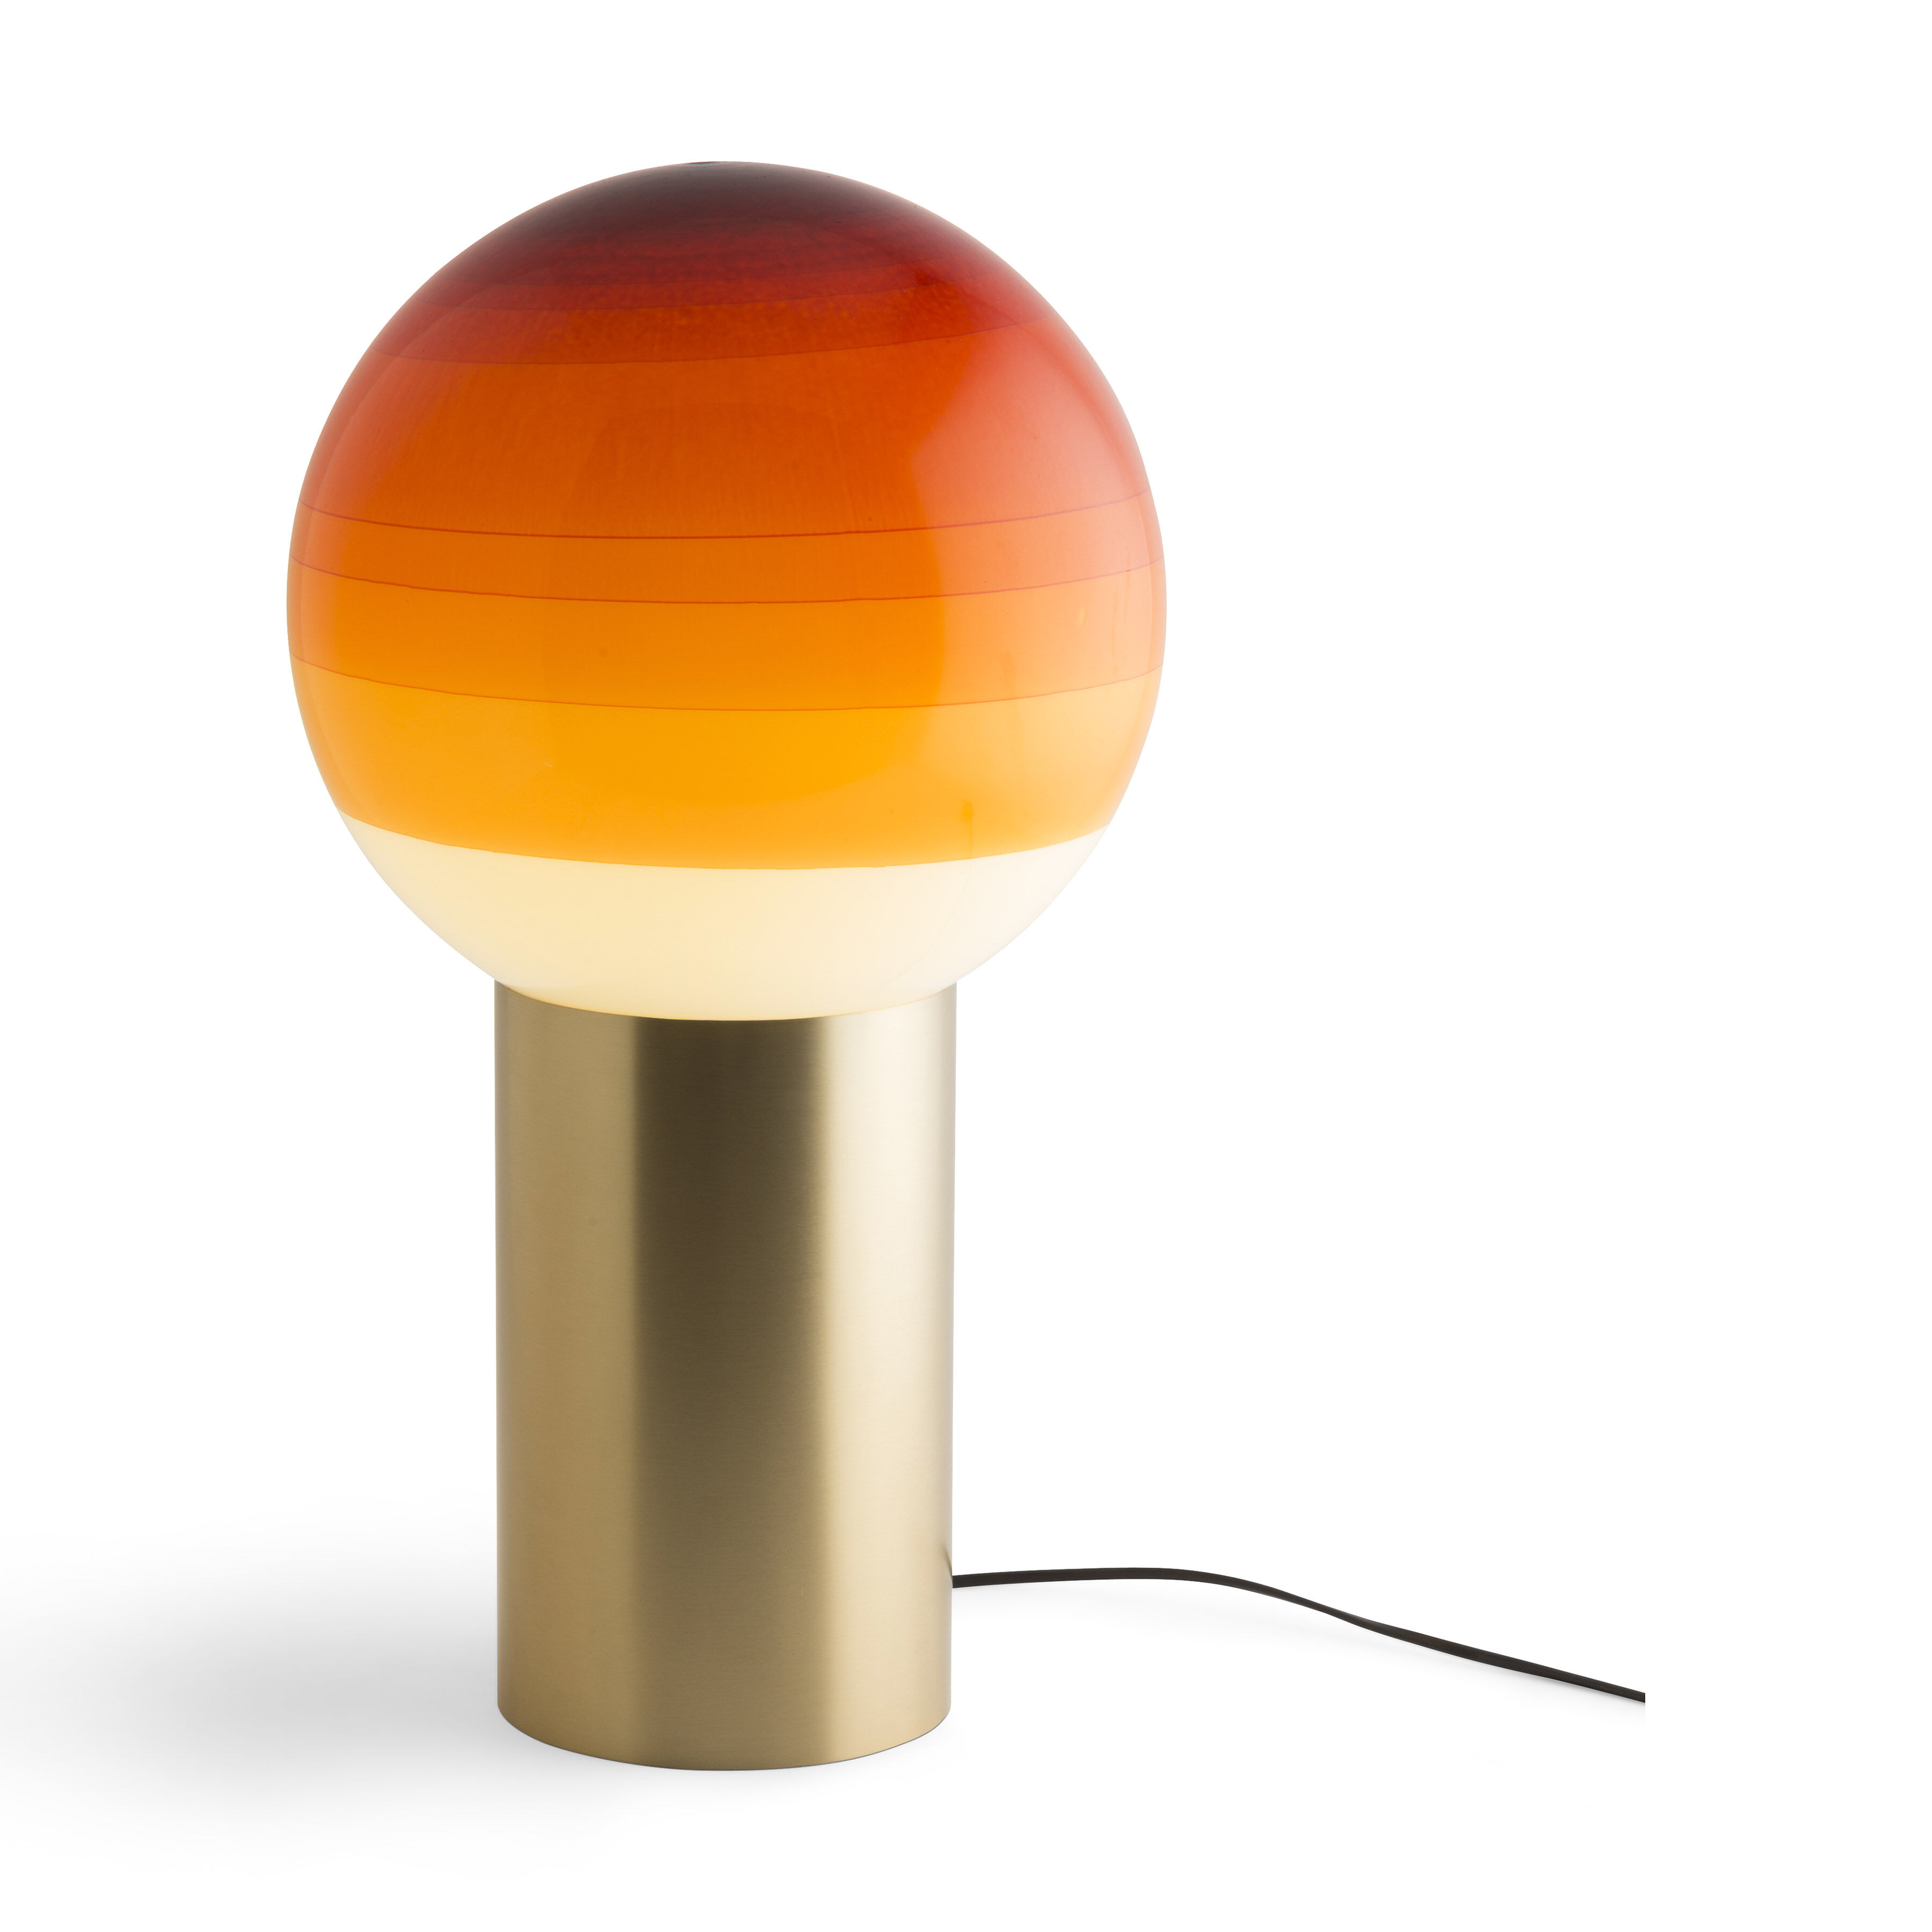 Dipping Lamp In Color Orange